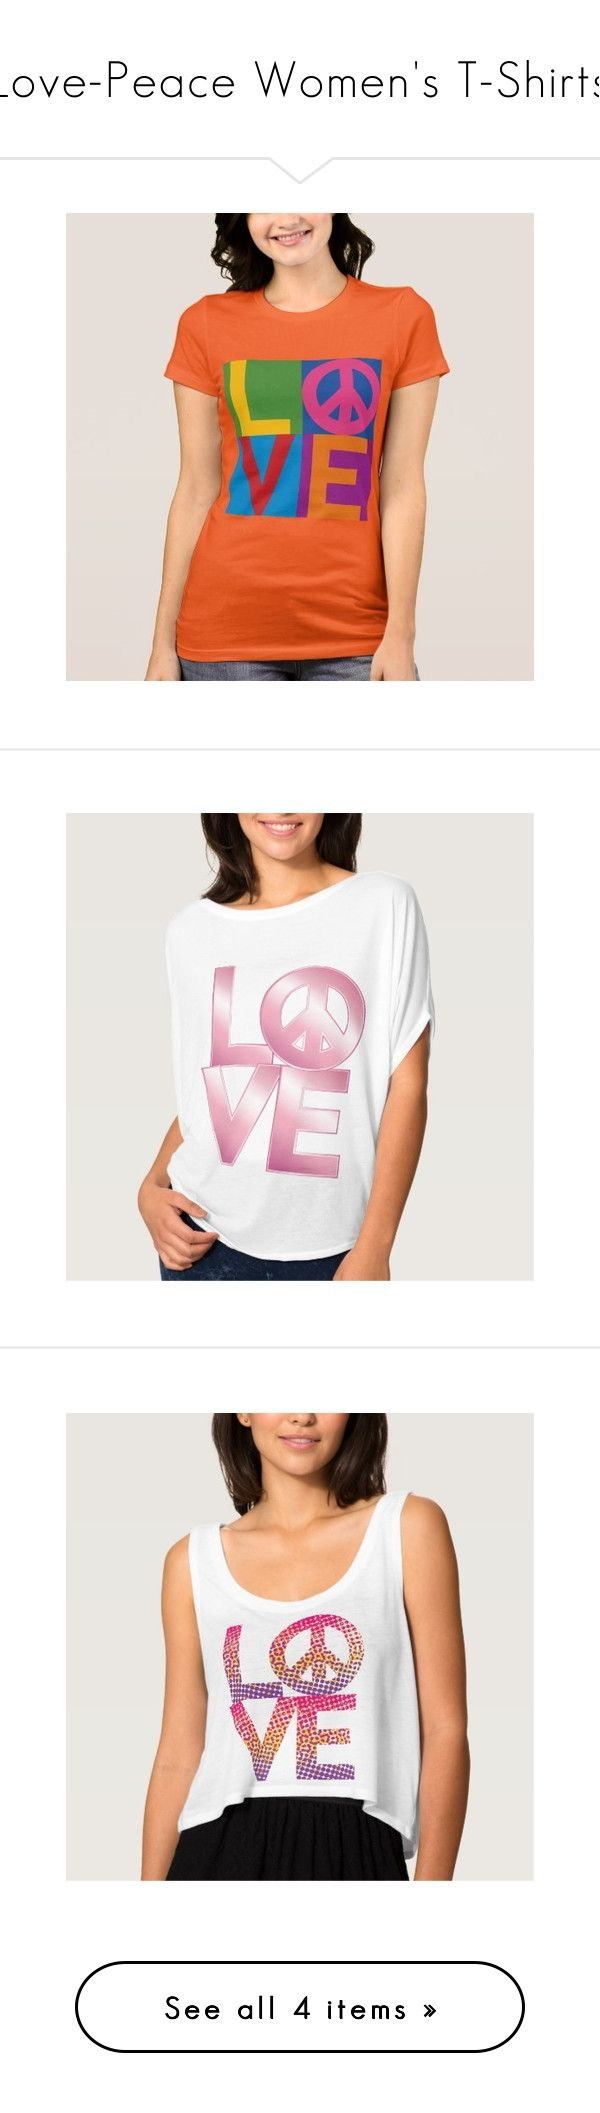 """Love-Peace Women's T-Shirts"" by lisafishgraphics ❤ liked on Polyvore featuring tops, t-shirts, colorblock top, orange top, orange tee, color block t shirt, peace sign t shirt, white top, peace t shirt and pink shirts"